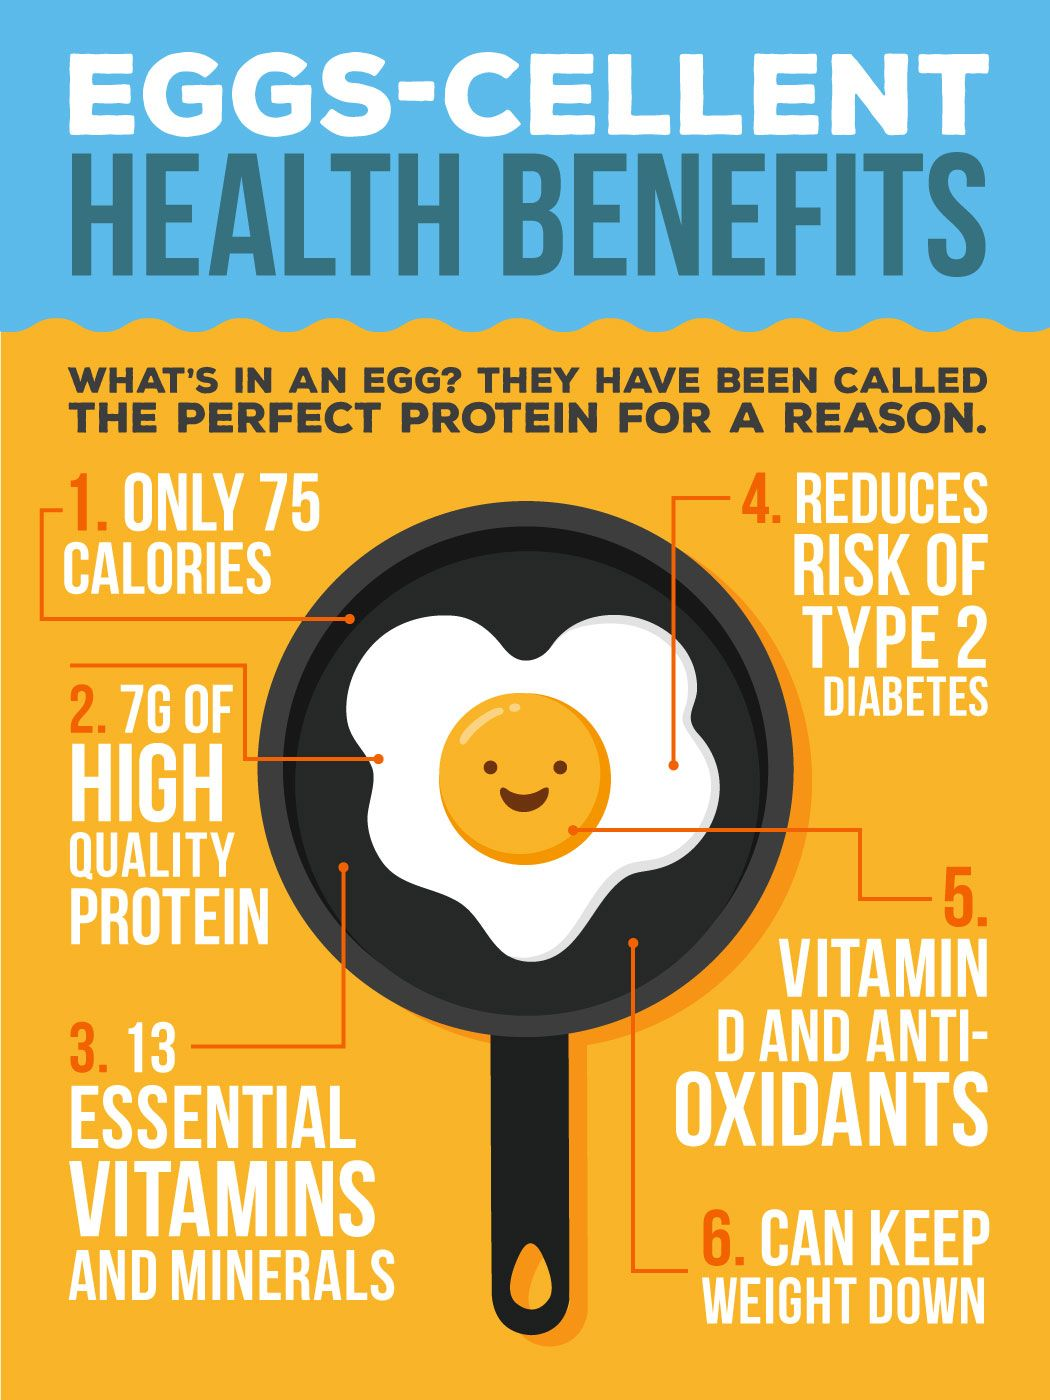 Health Benefits of Eggs